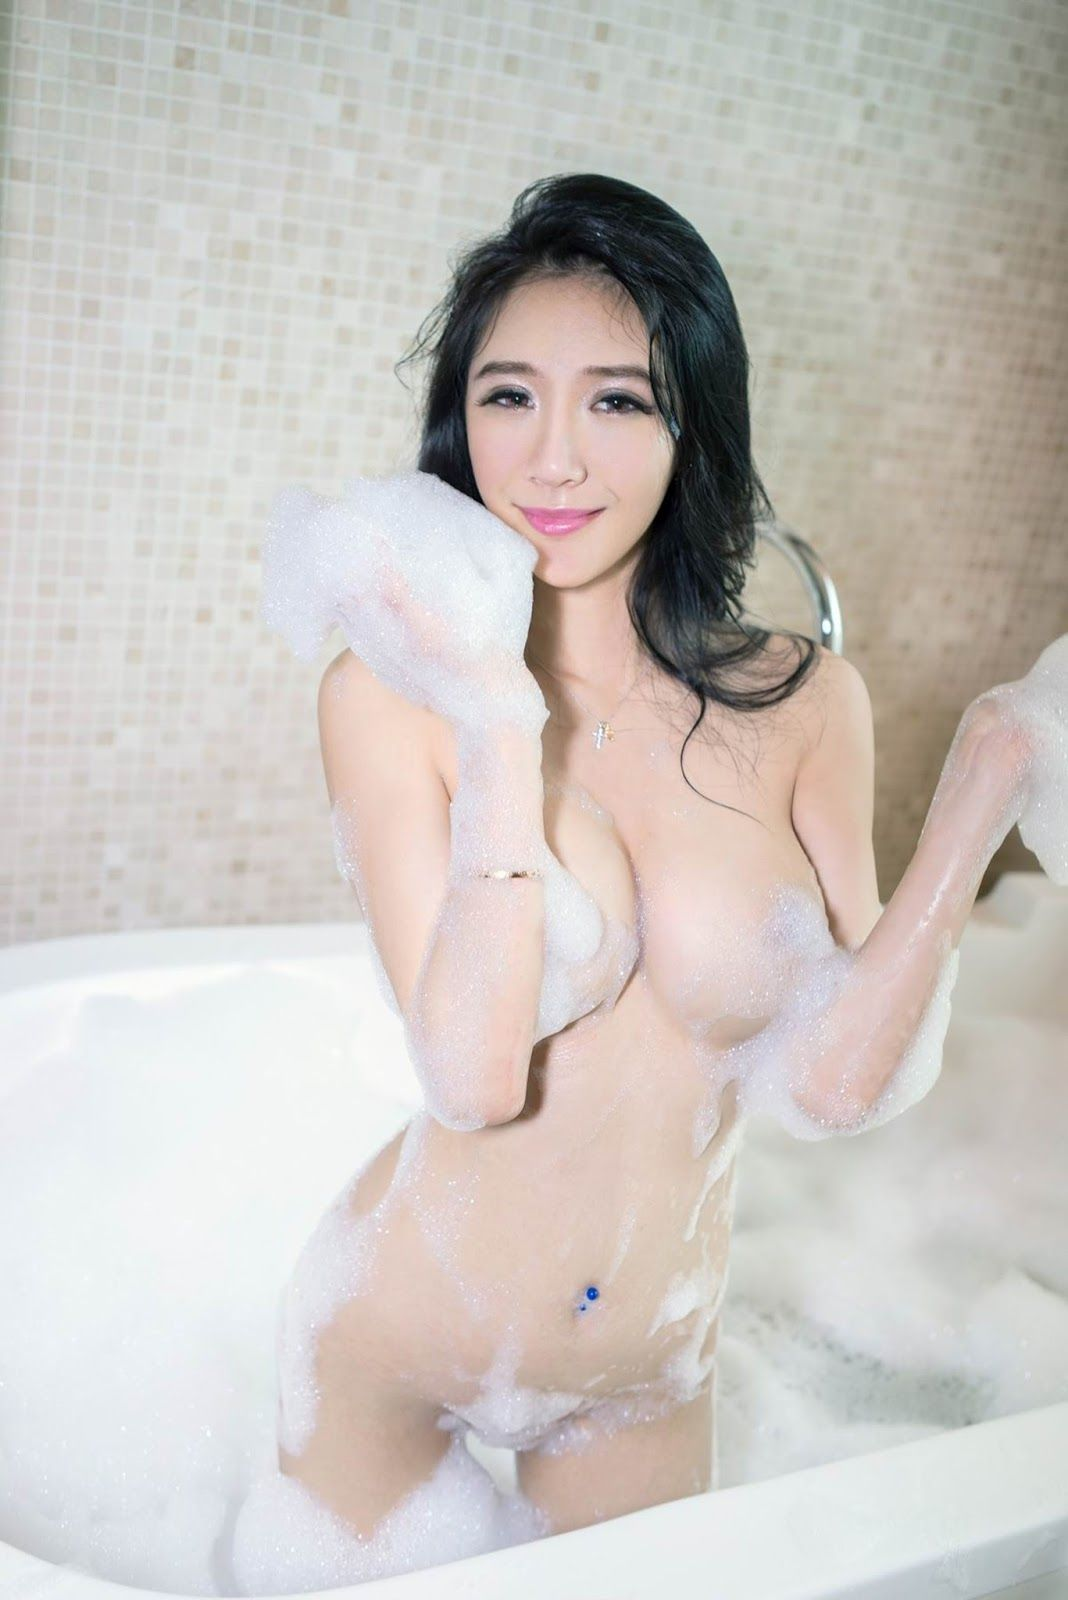 Want her korean chang jia women peeing is!!!